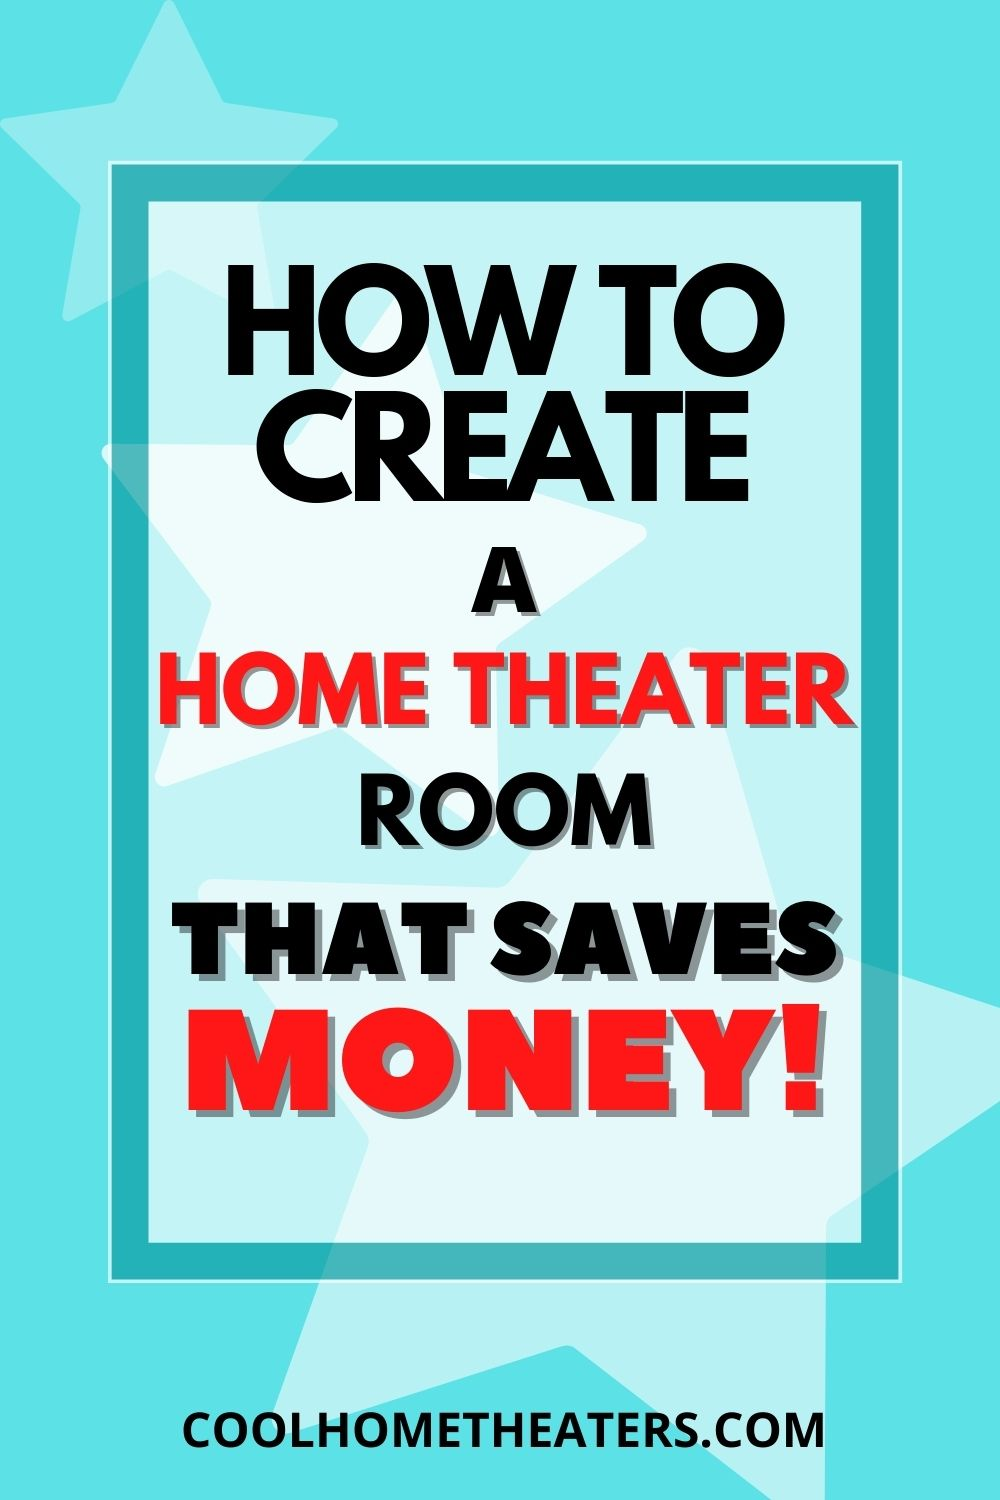 How To Create A Home Theater Room?